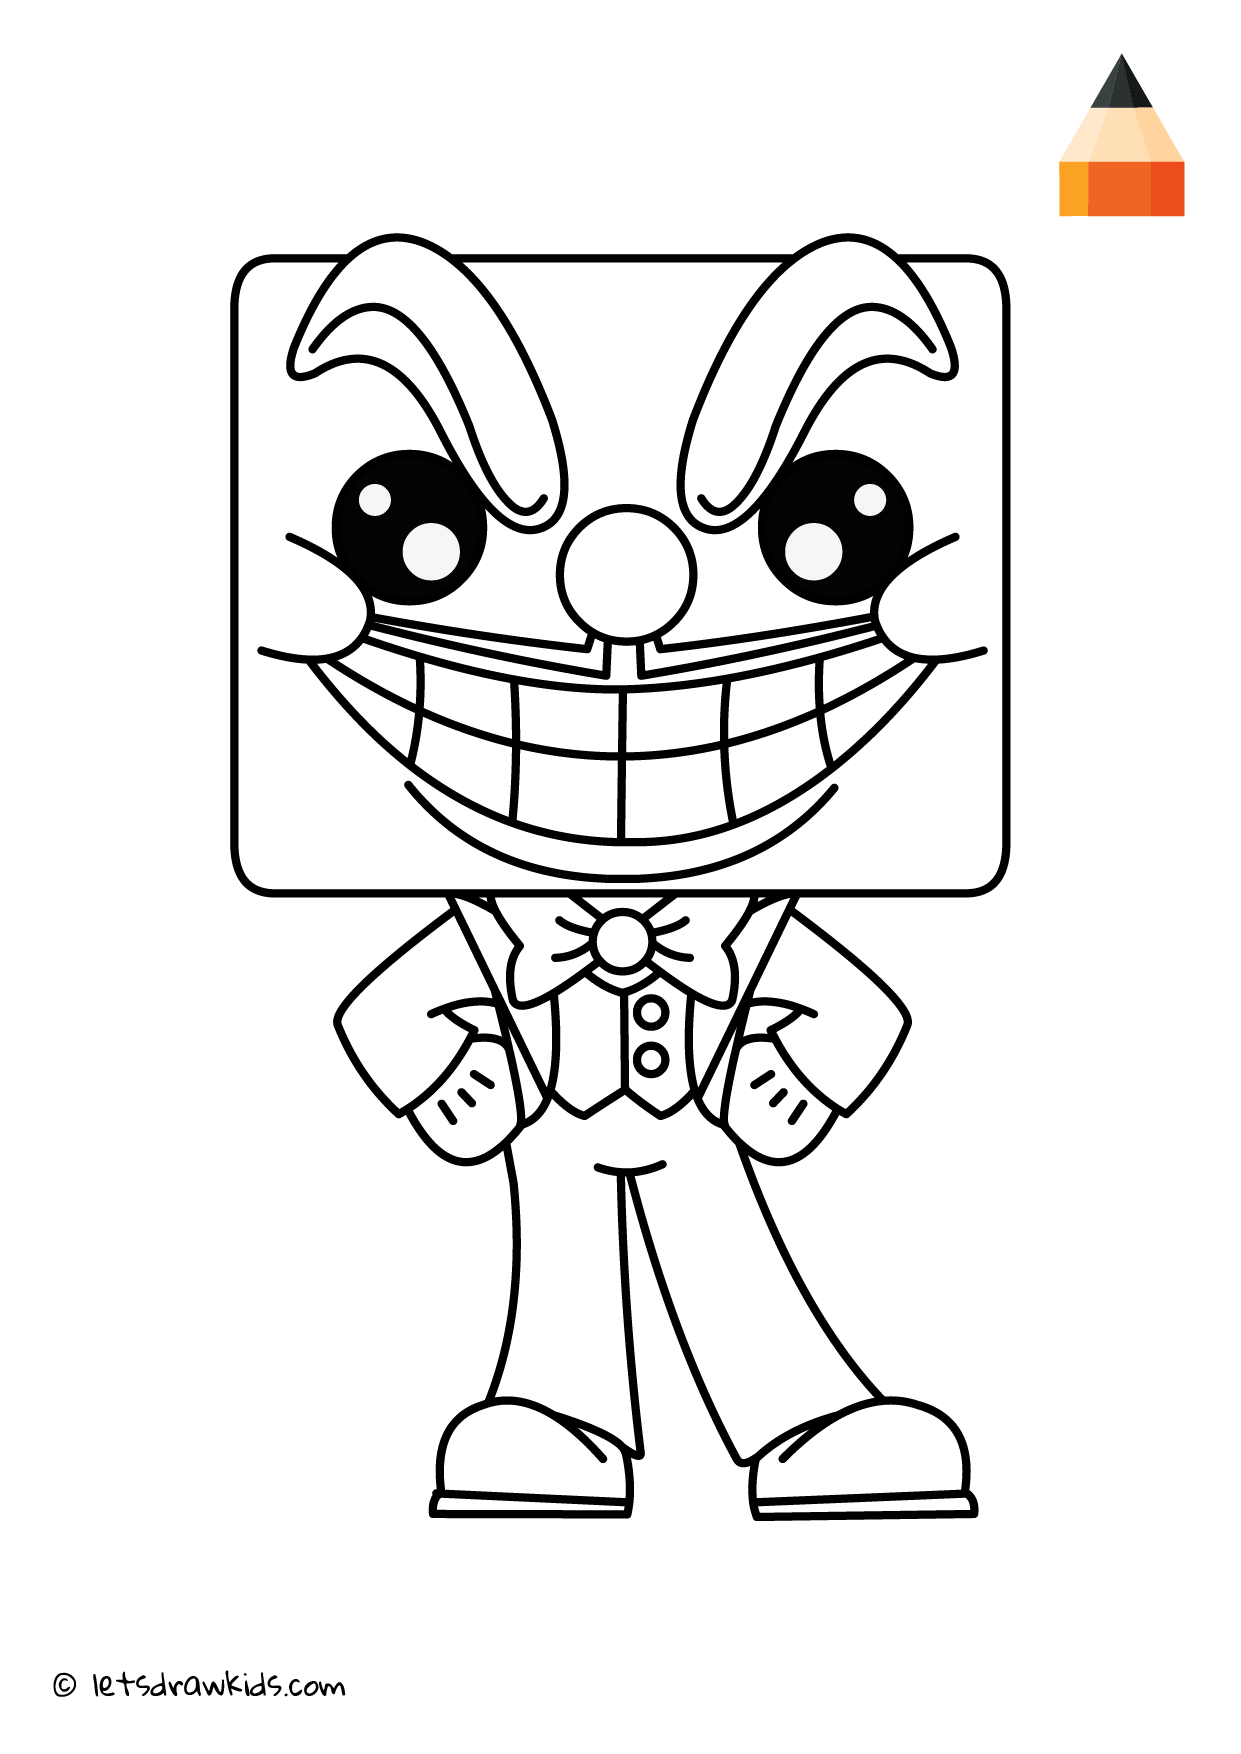 Coloring Page King Dice Chibi Coloring Pages Grinch Coloring Pages Coloring Pages Inspirational